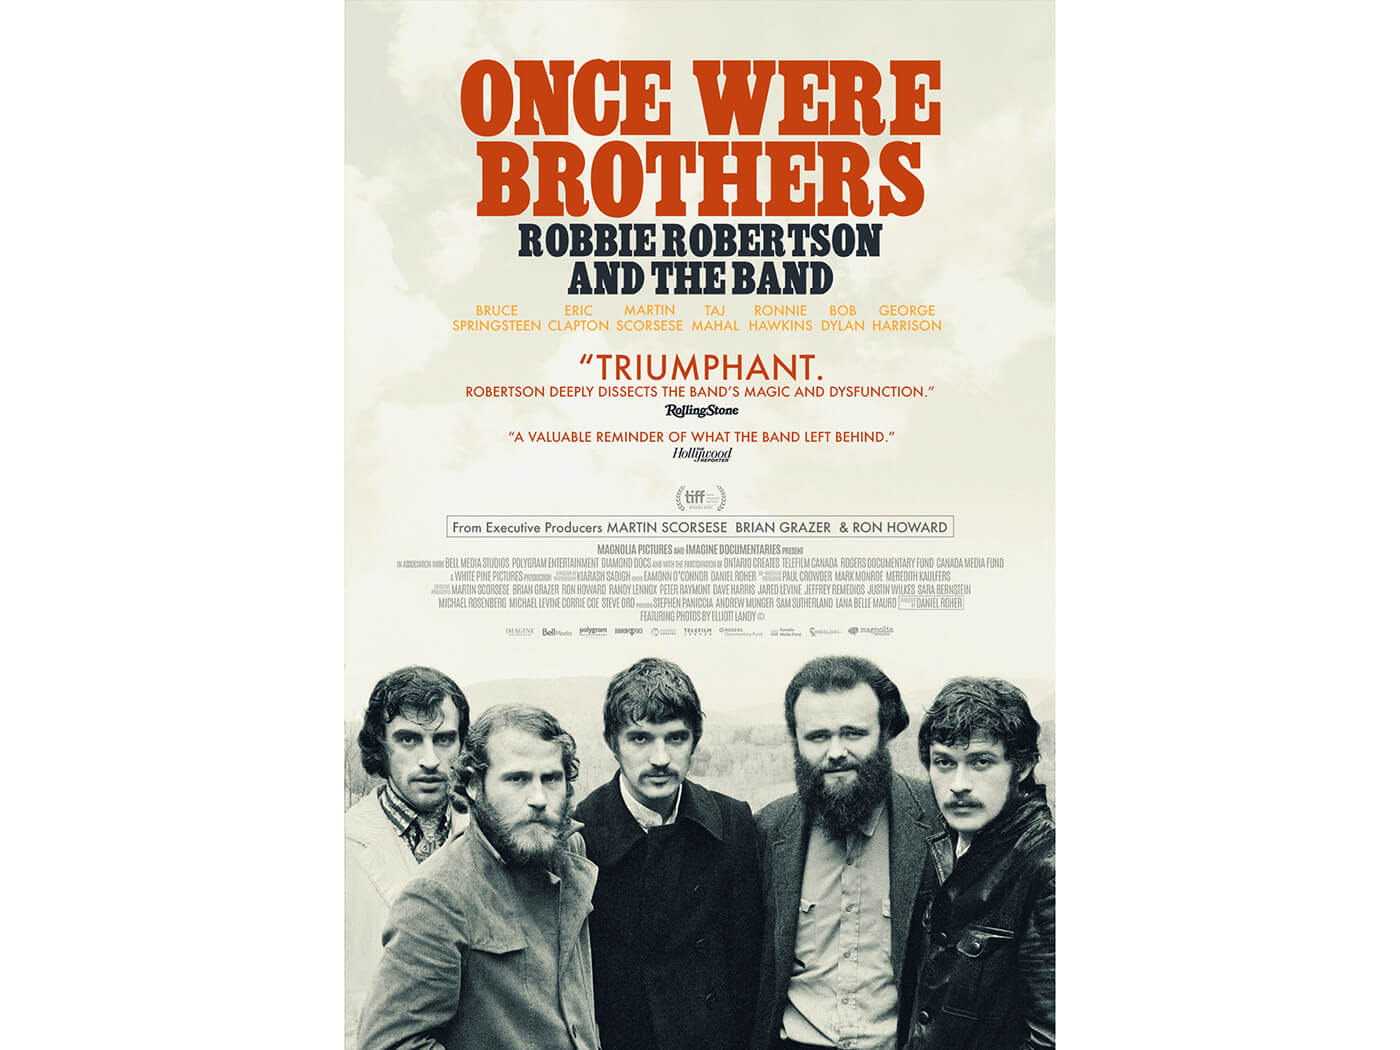 Watch a trailer for The Band documentary, Once Were Brothers - UNCUT